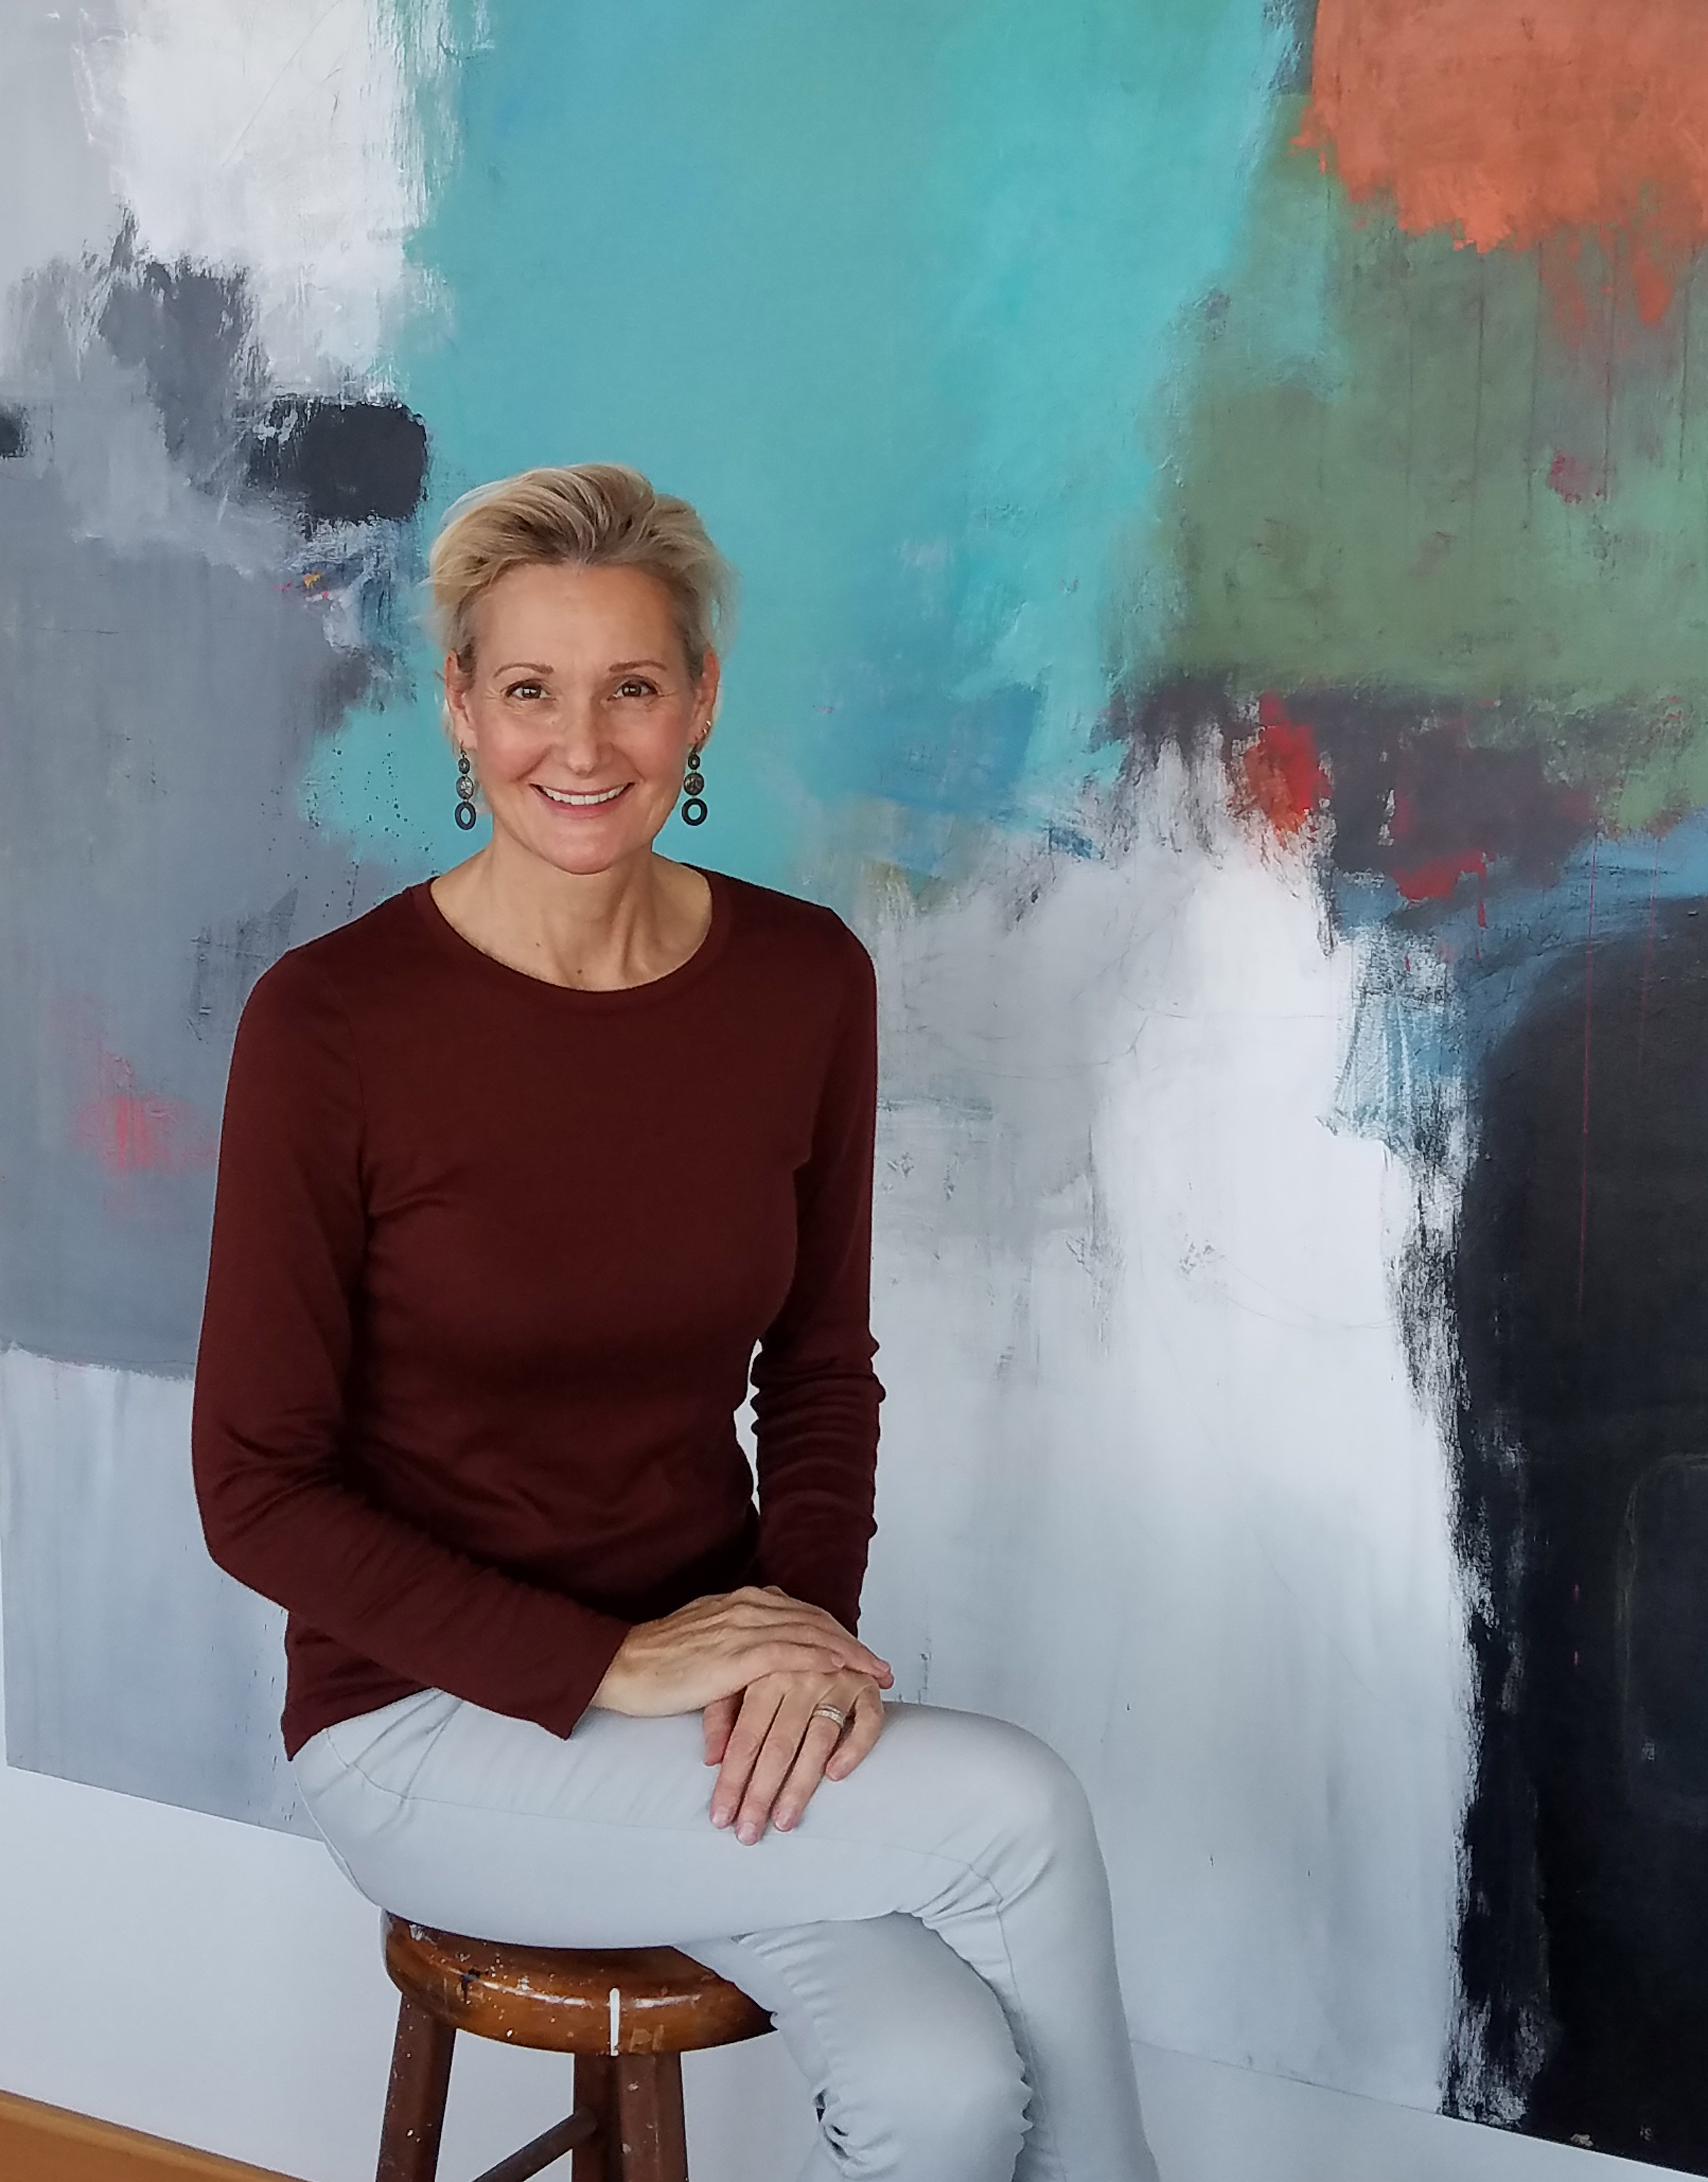 #109 Betty Krause: Painter of Abstract Florals and Master at Videos and Instagram